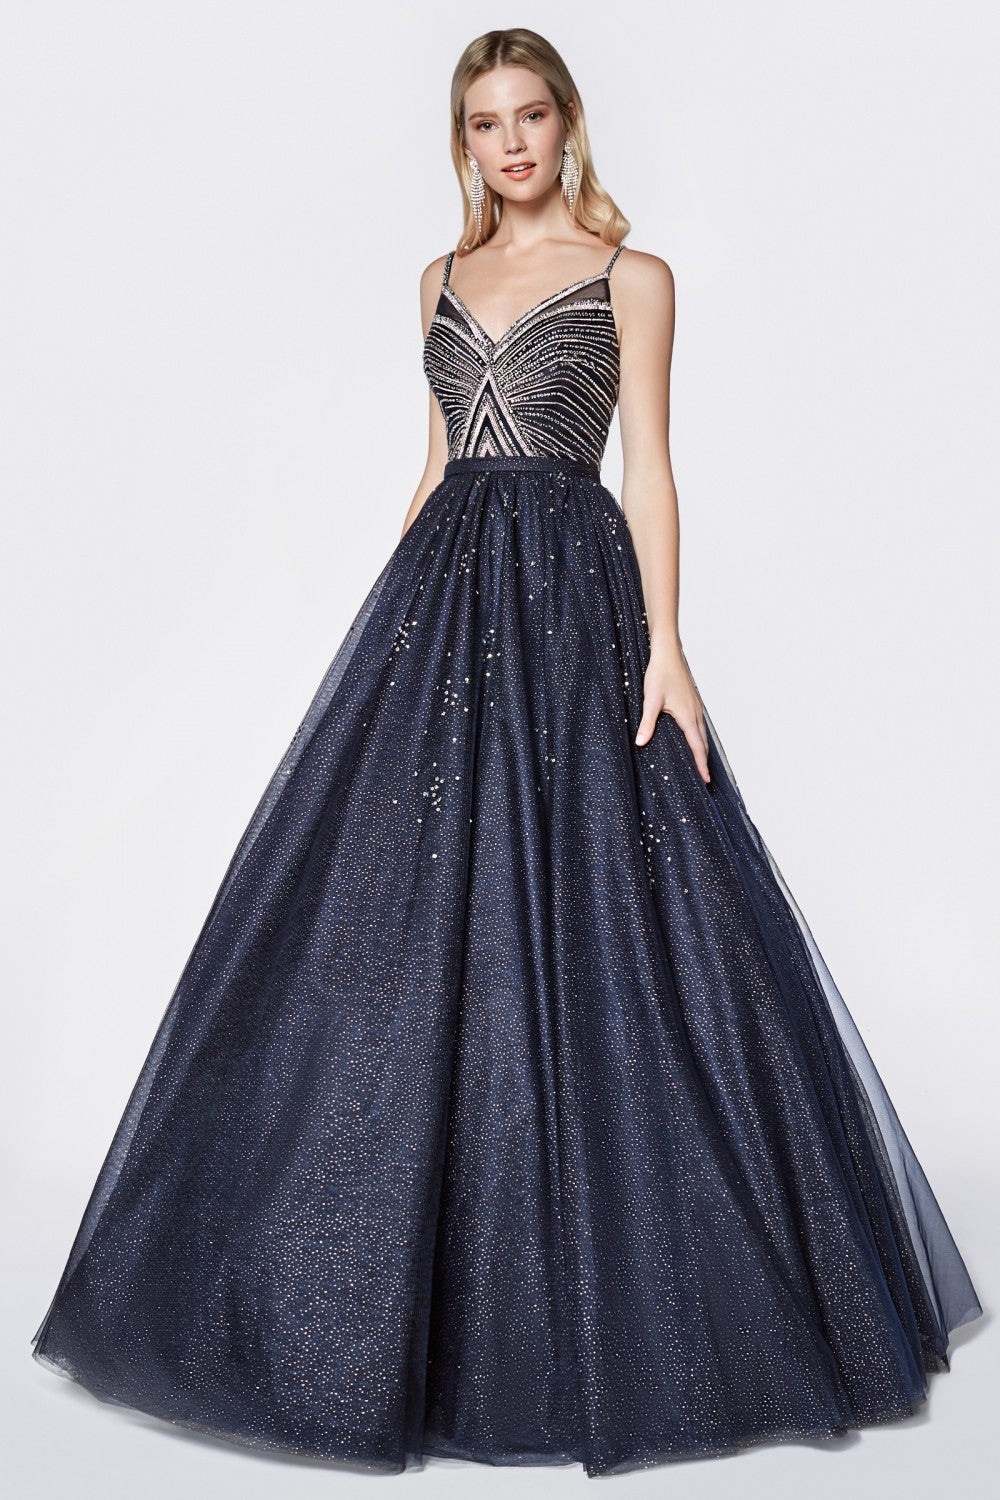 Glittered Ball Gown With Beaded Bodice Detail